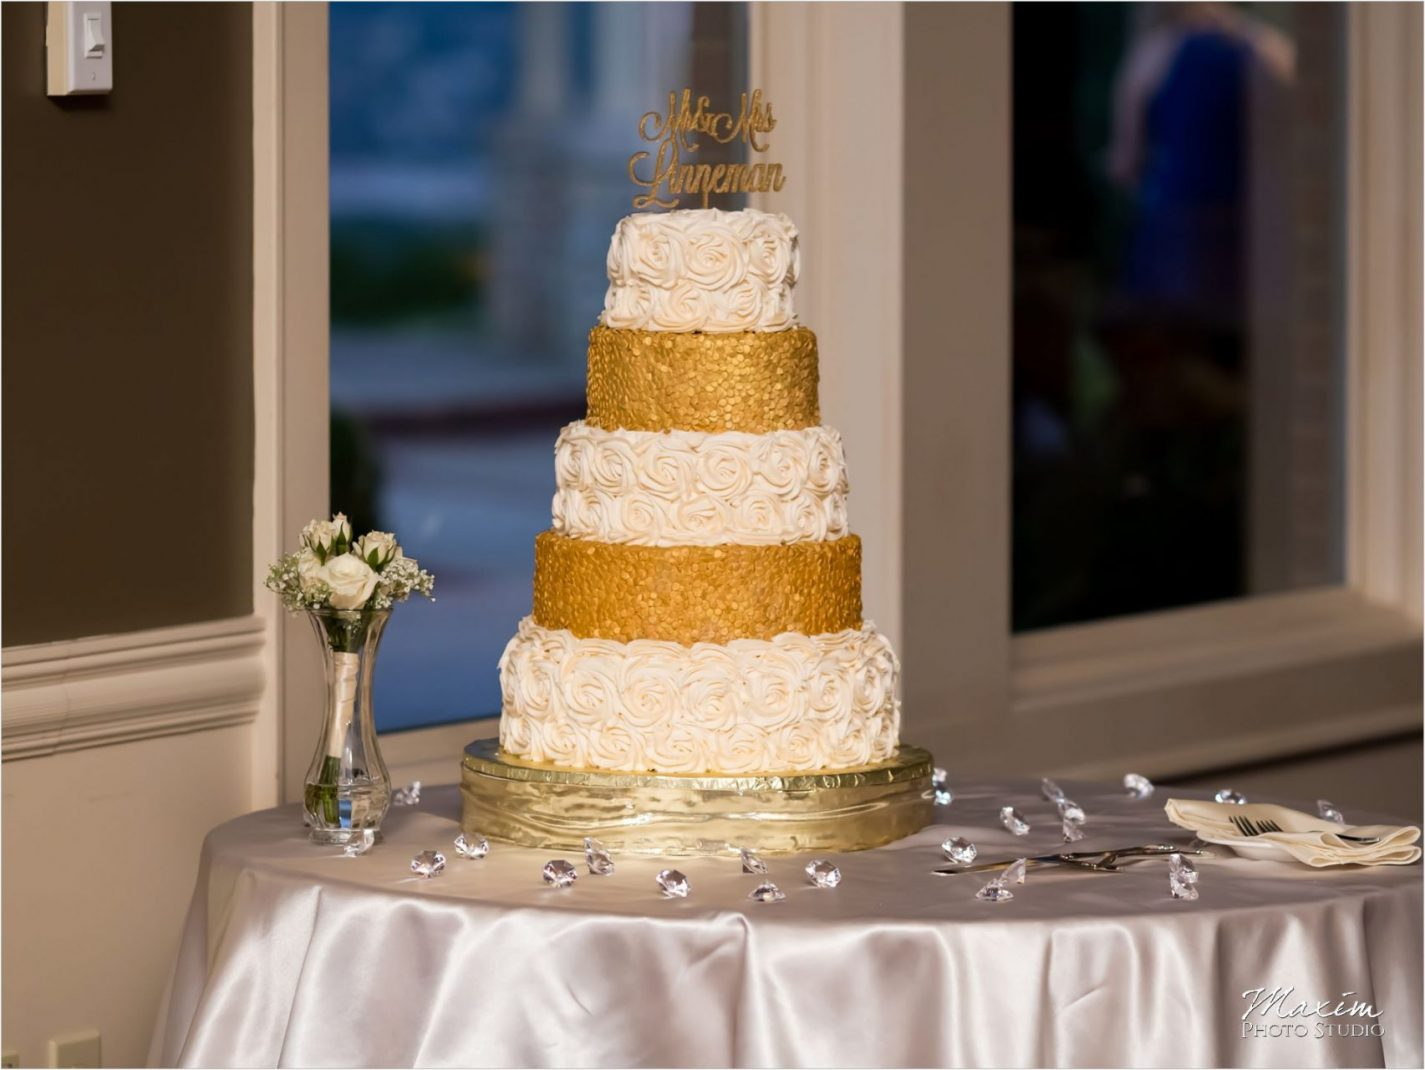 Drees Pavilion Covington Kentucky Wedding Cake